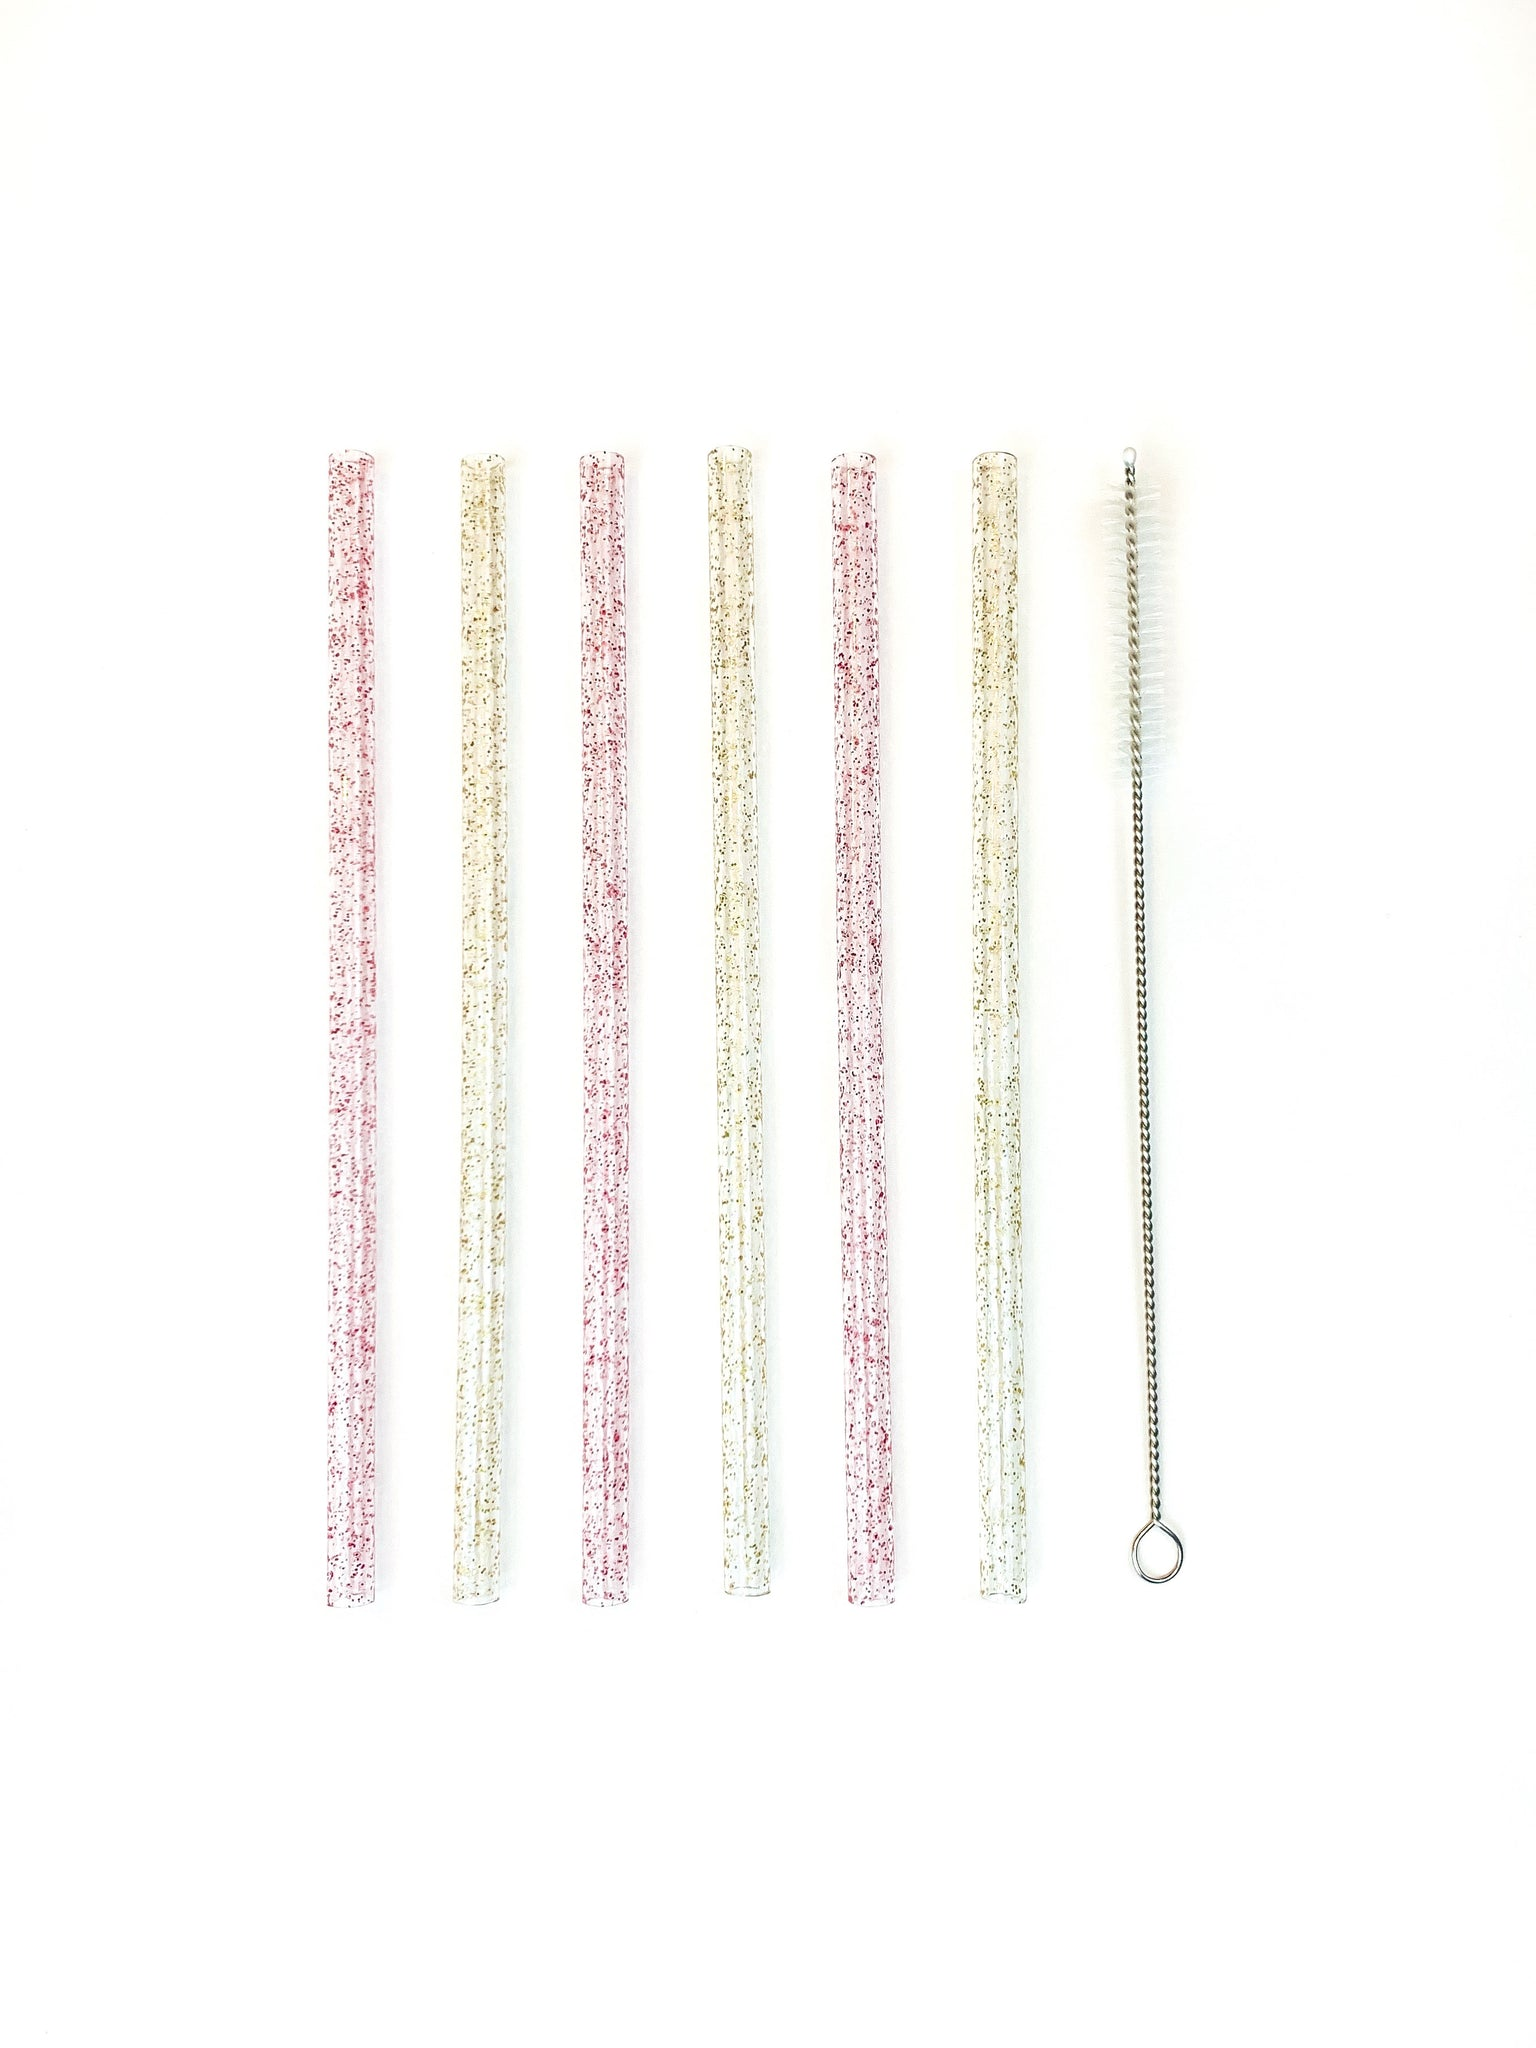 Glitter straw glittery straw cute straw reusable straw plastic straw washable straw party straw eco friendly gold straw pink straw straw set gifts straw set gift bachelorette party sustainable gifts